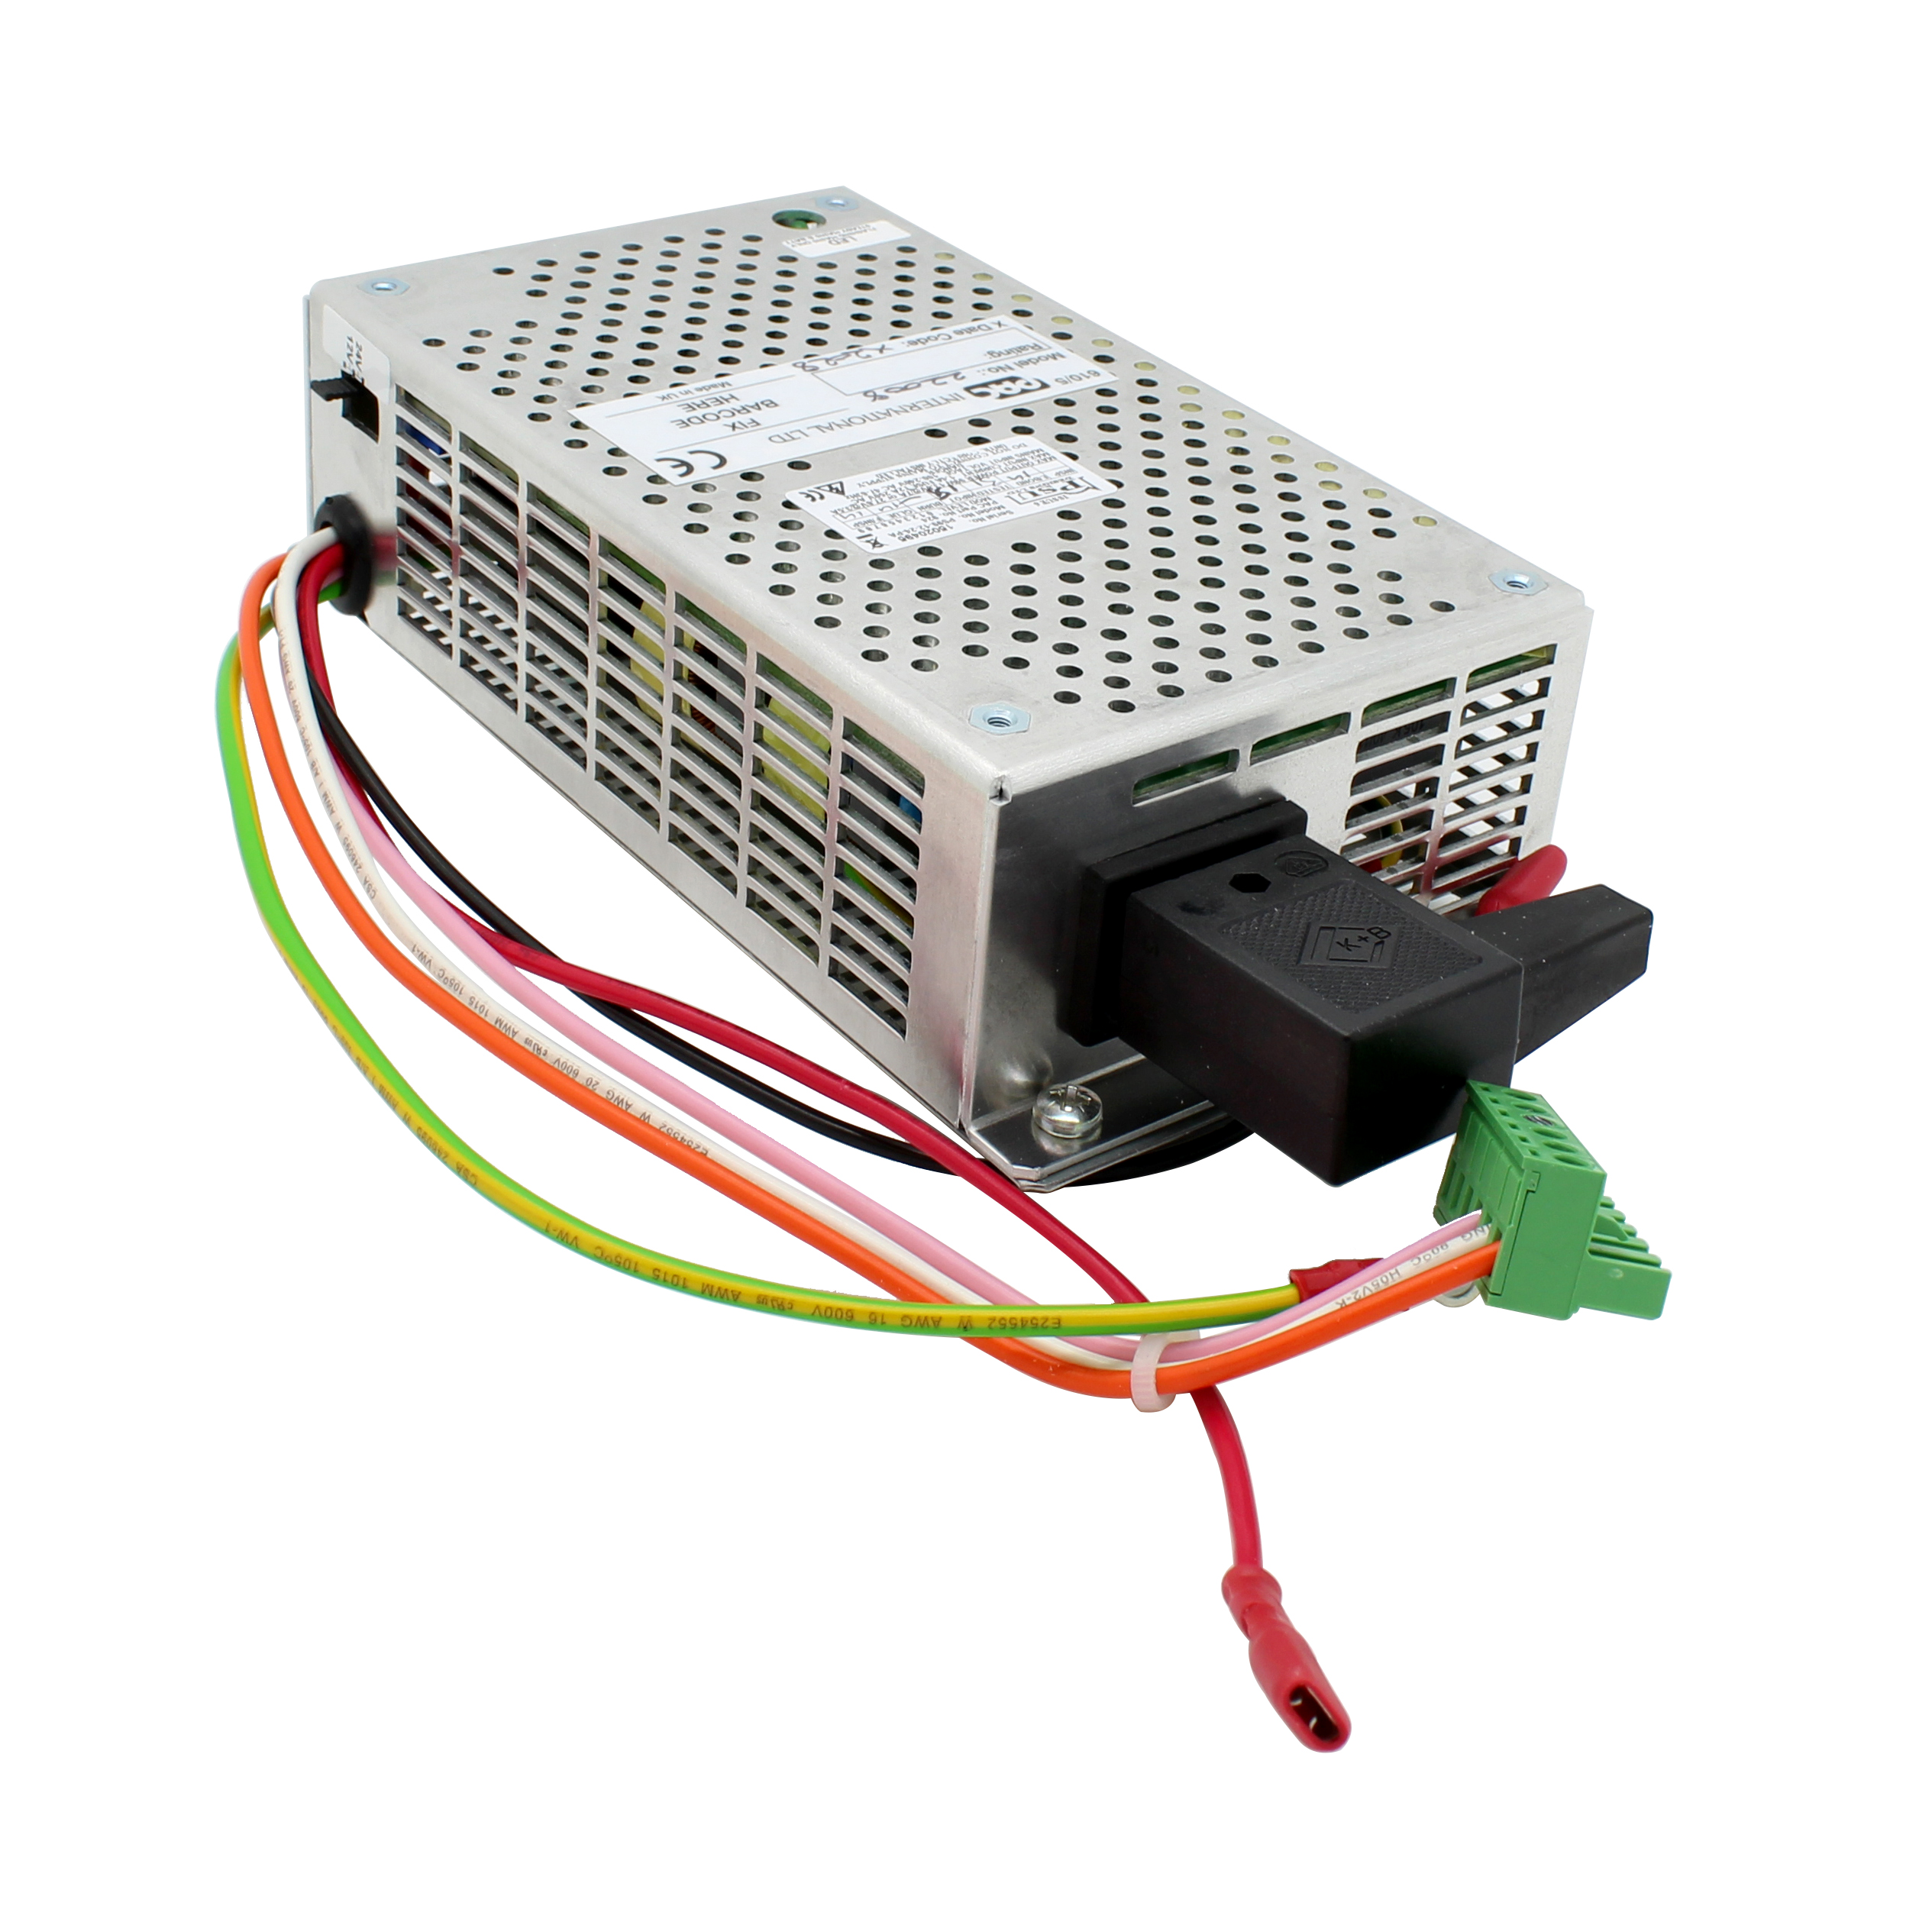 DIN rail PSU with battery charger - output 12/24VDC at up to 7.2Amps